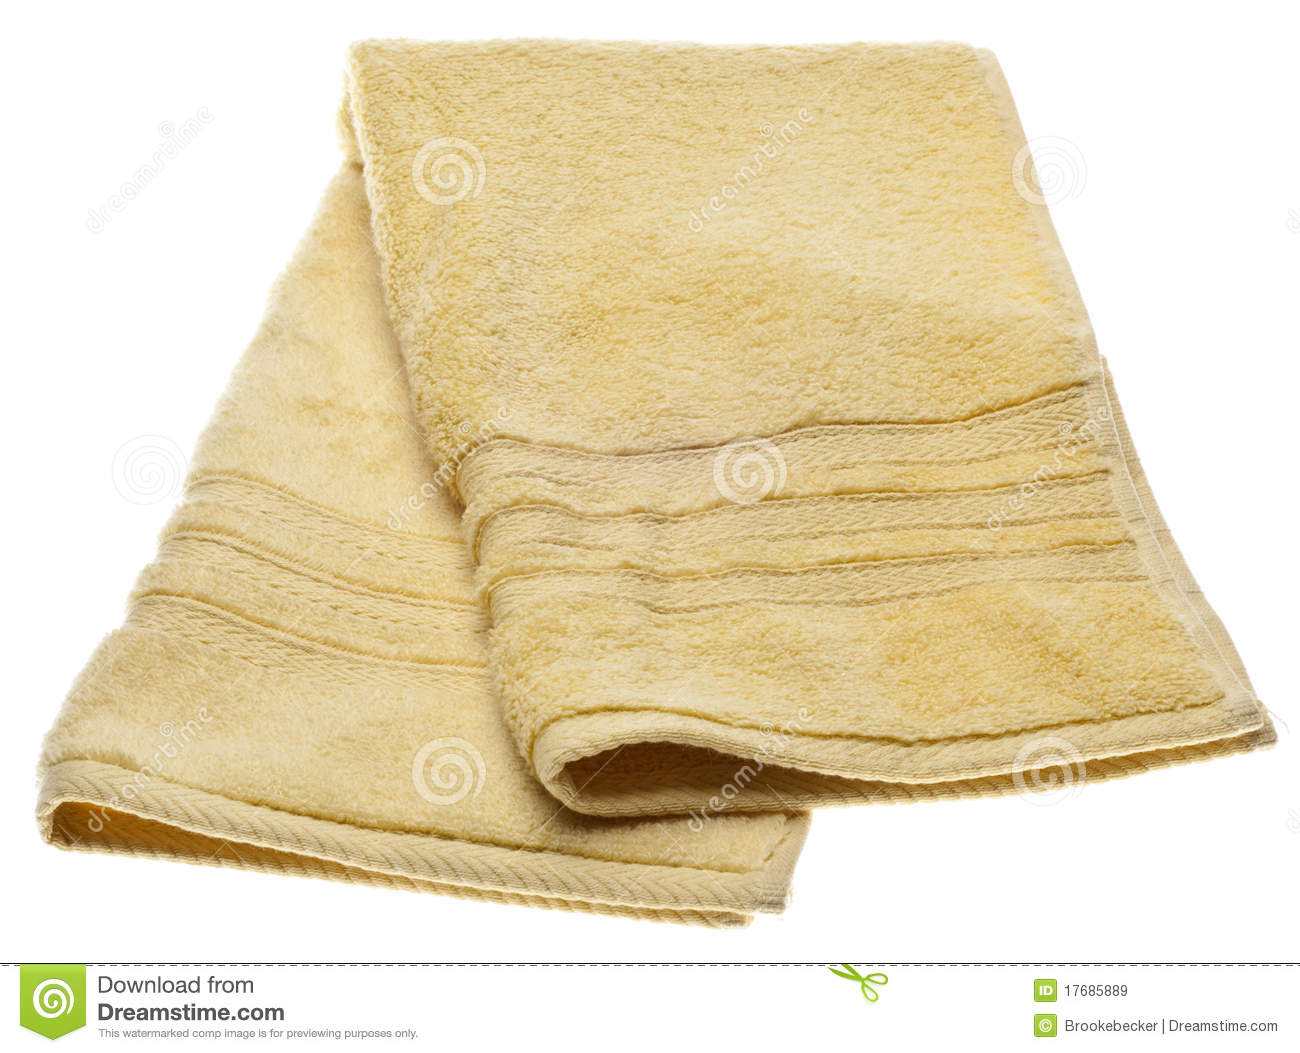 Yellow Kitchen Dish Towel Royalty Free Stock Images   Image  17685889